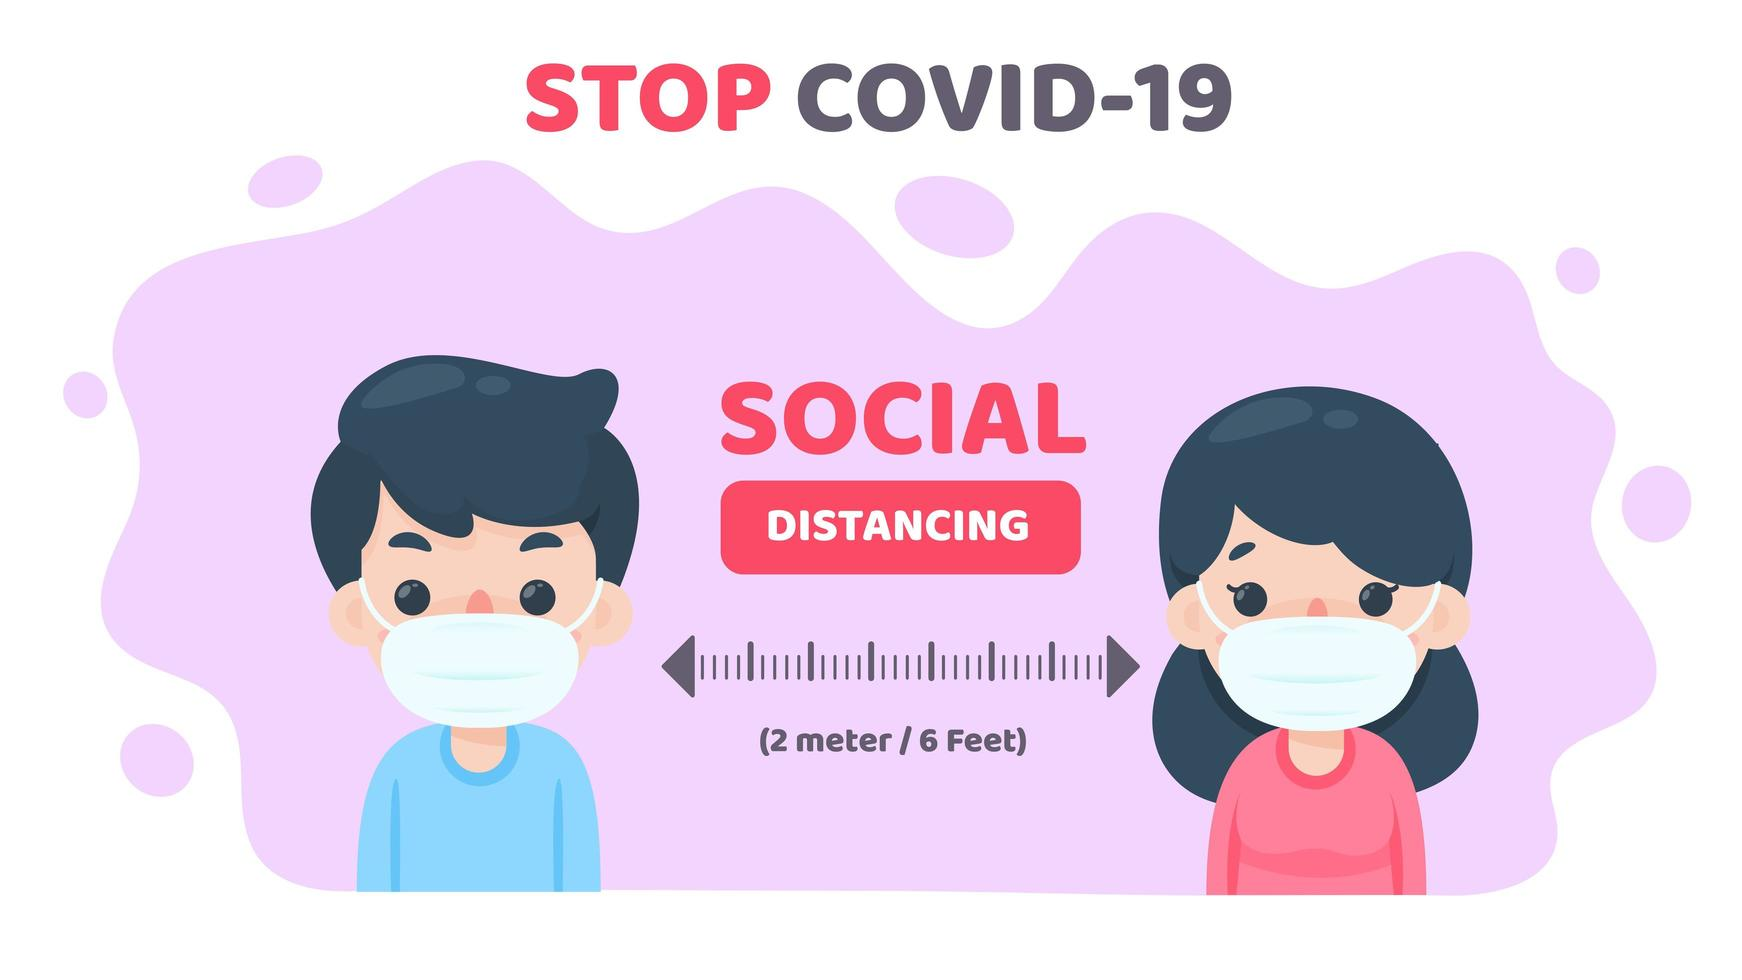 Cartoon masked people social distancing to stop Covid-19 vector